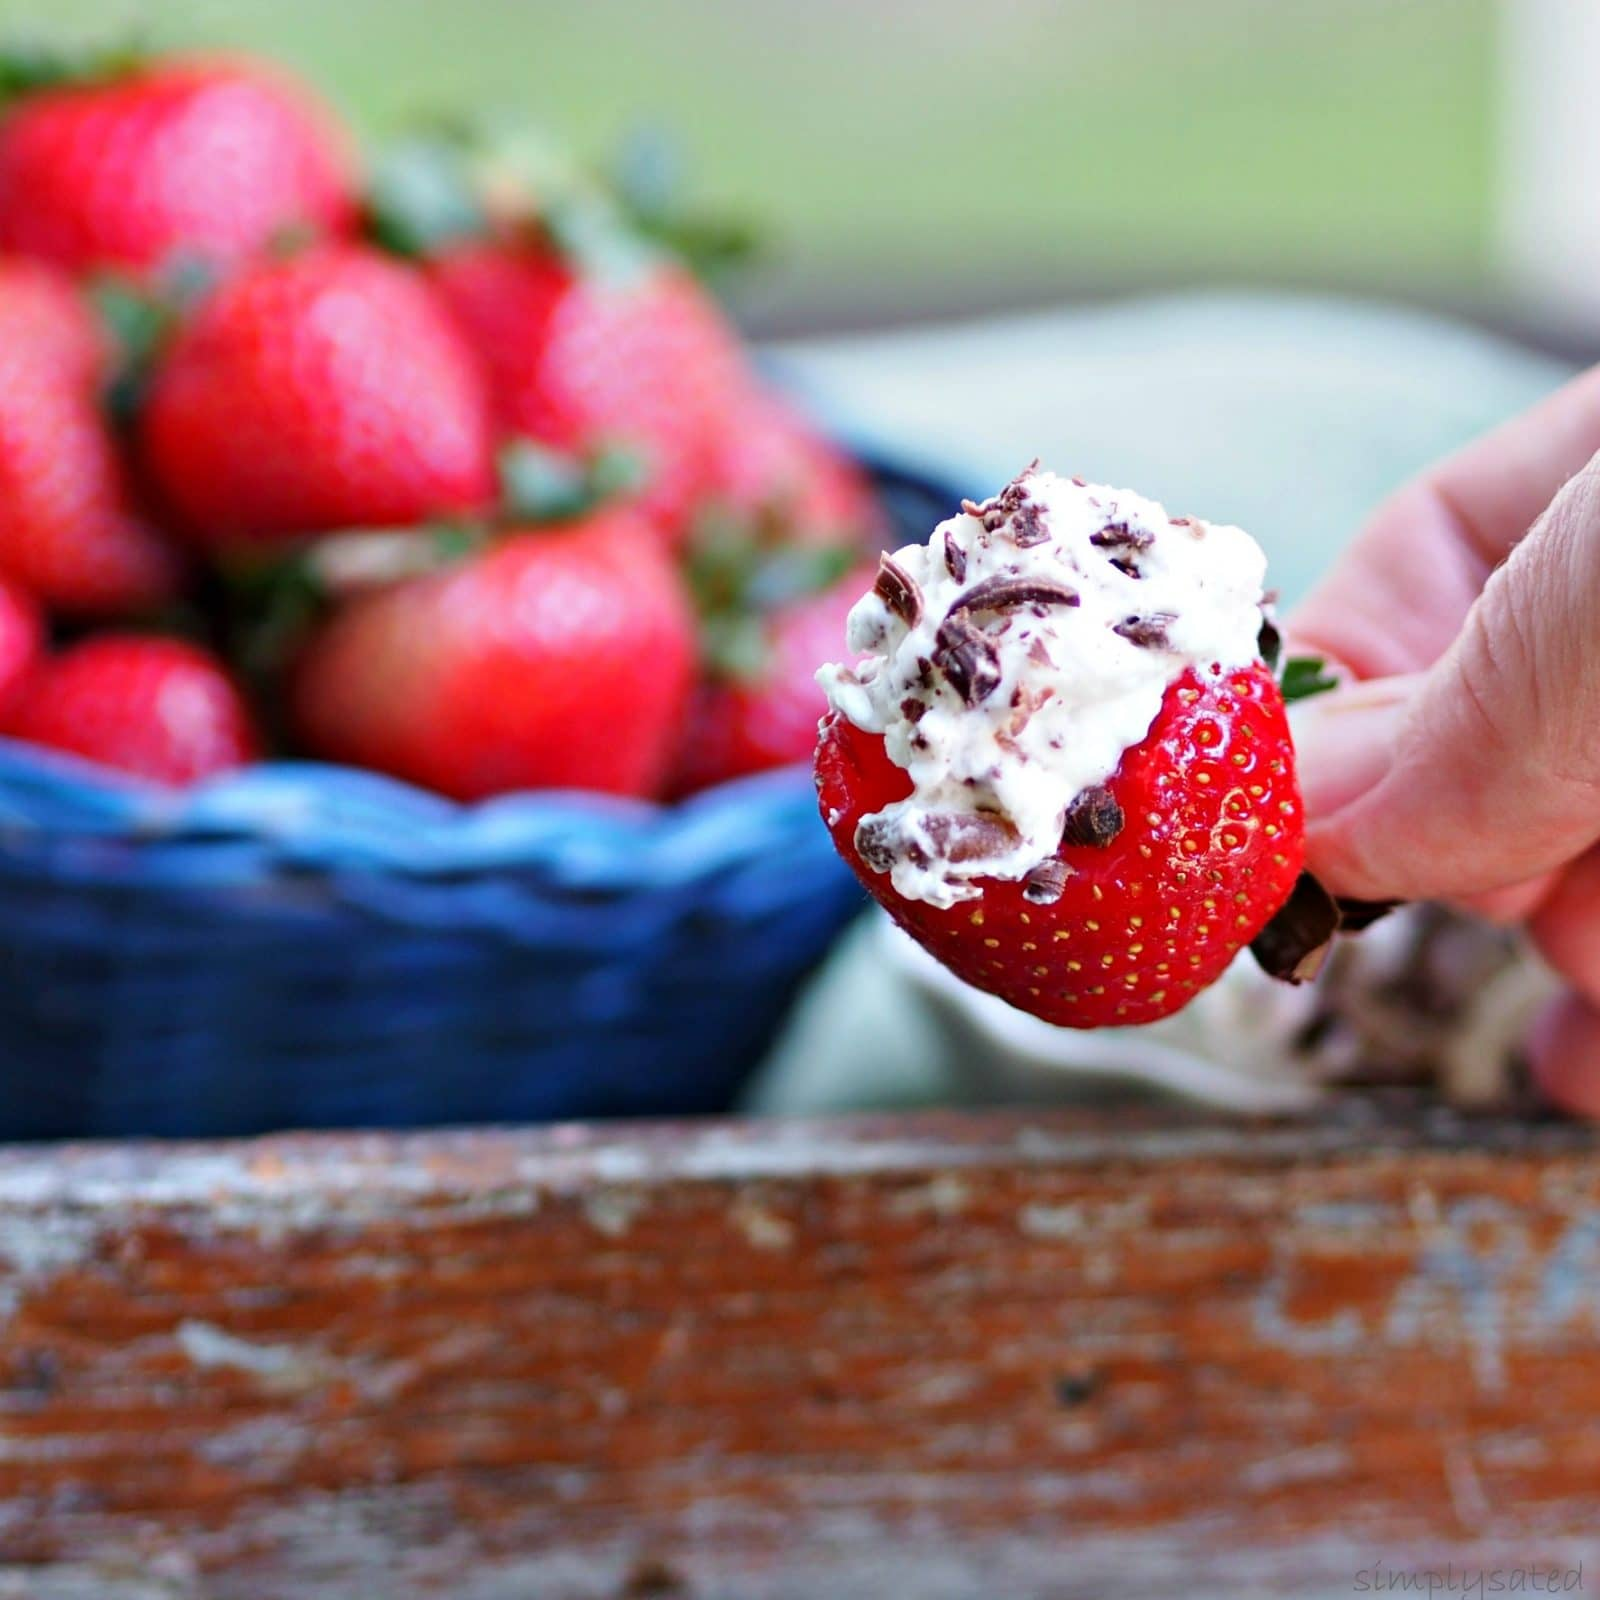 Strawberries & Cream with Chocolate is a beautiful and easy dessert or appetizer. simply sated